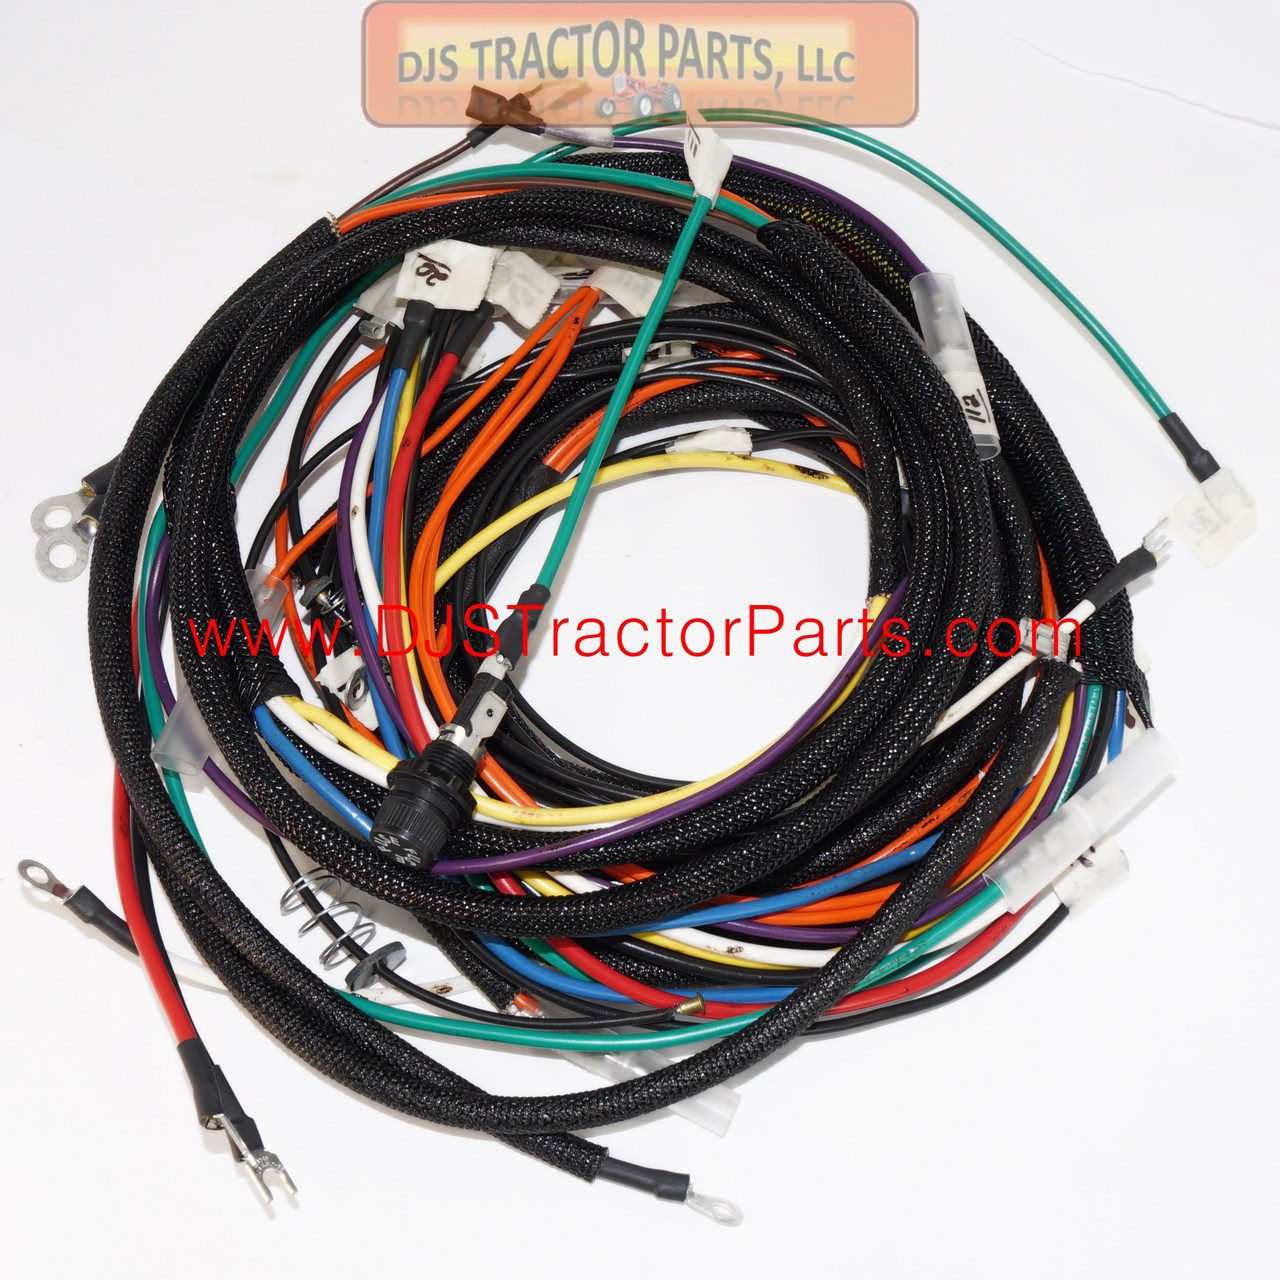 wiring harness kit allis chalmers d14, d15 series i ac 2260d RV AC Wiring Harness  GT Wiring Harness Mustang AC Wiring Harness Motorcycle Wiring Harness